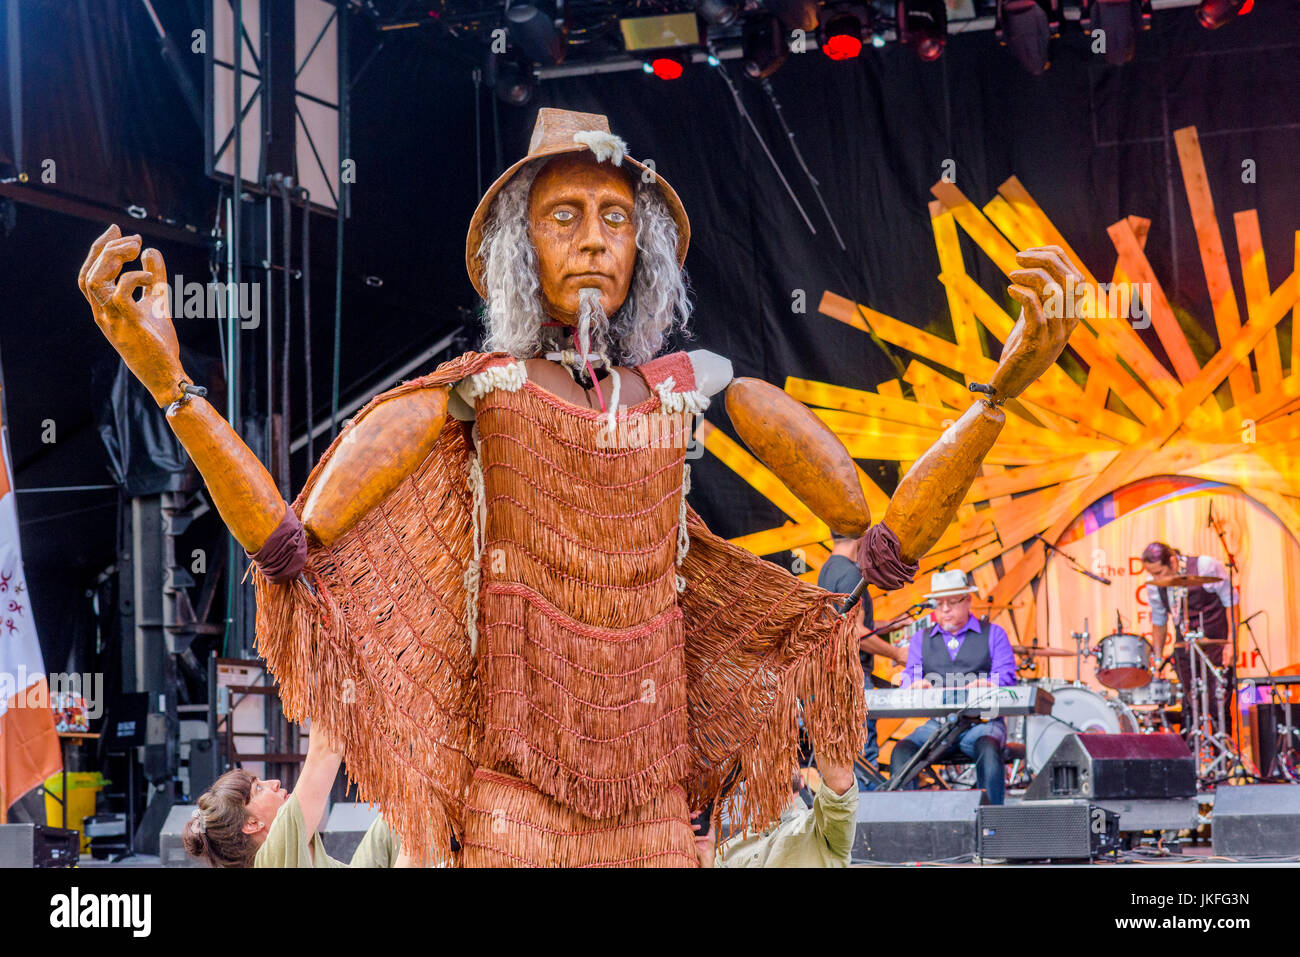 Vancouver, Canada. 22nd July, 2017. Mortal Coil's First Welcome Hych'ka, Giant Coast Salish puppet appears - Stock Image